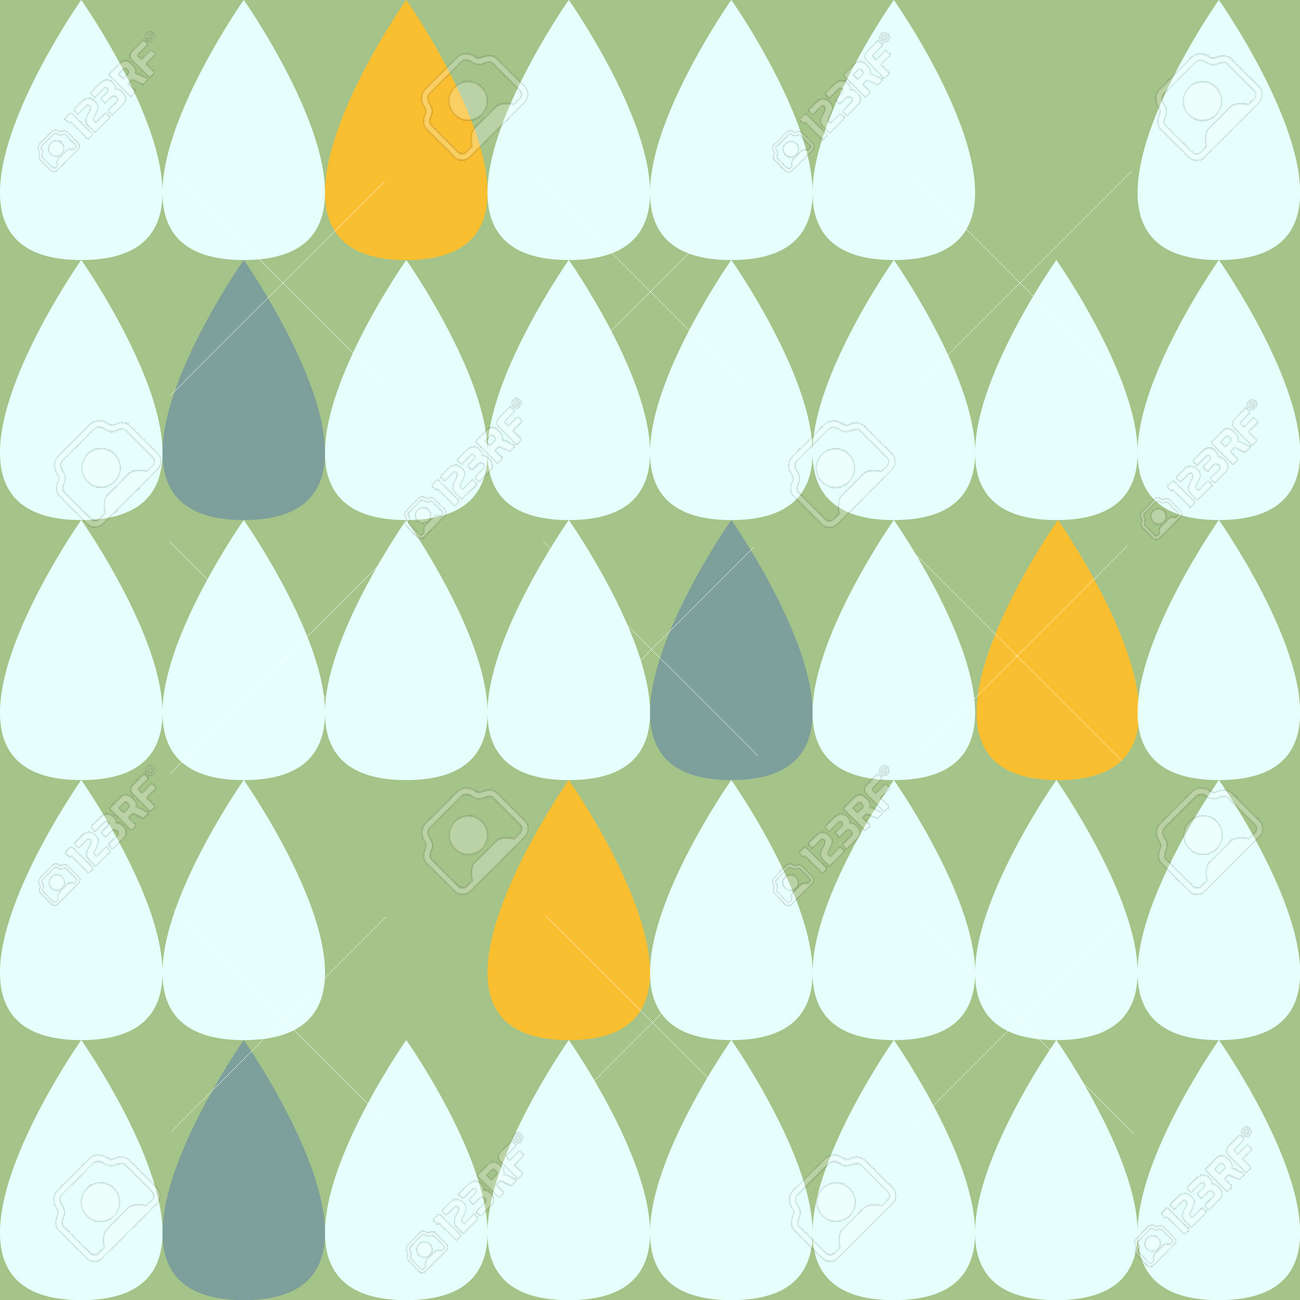 Drop pattern. Seamless pattern. Material for wallpaper and wrapping paper. Textile design. - 169172702